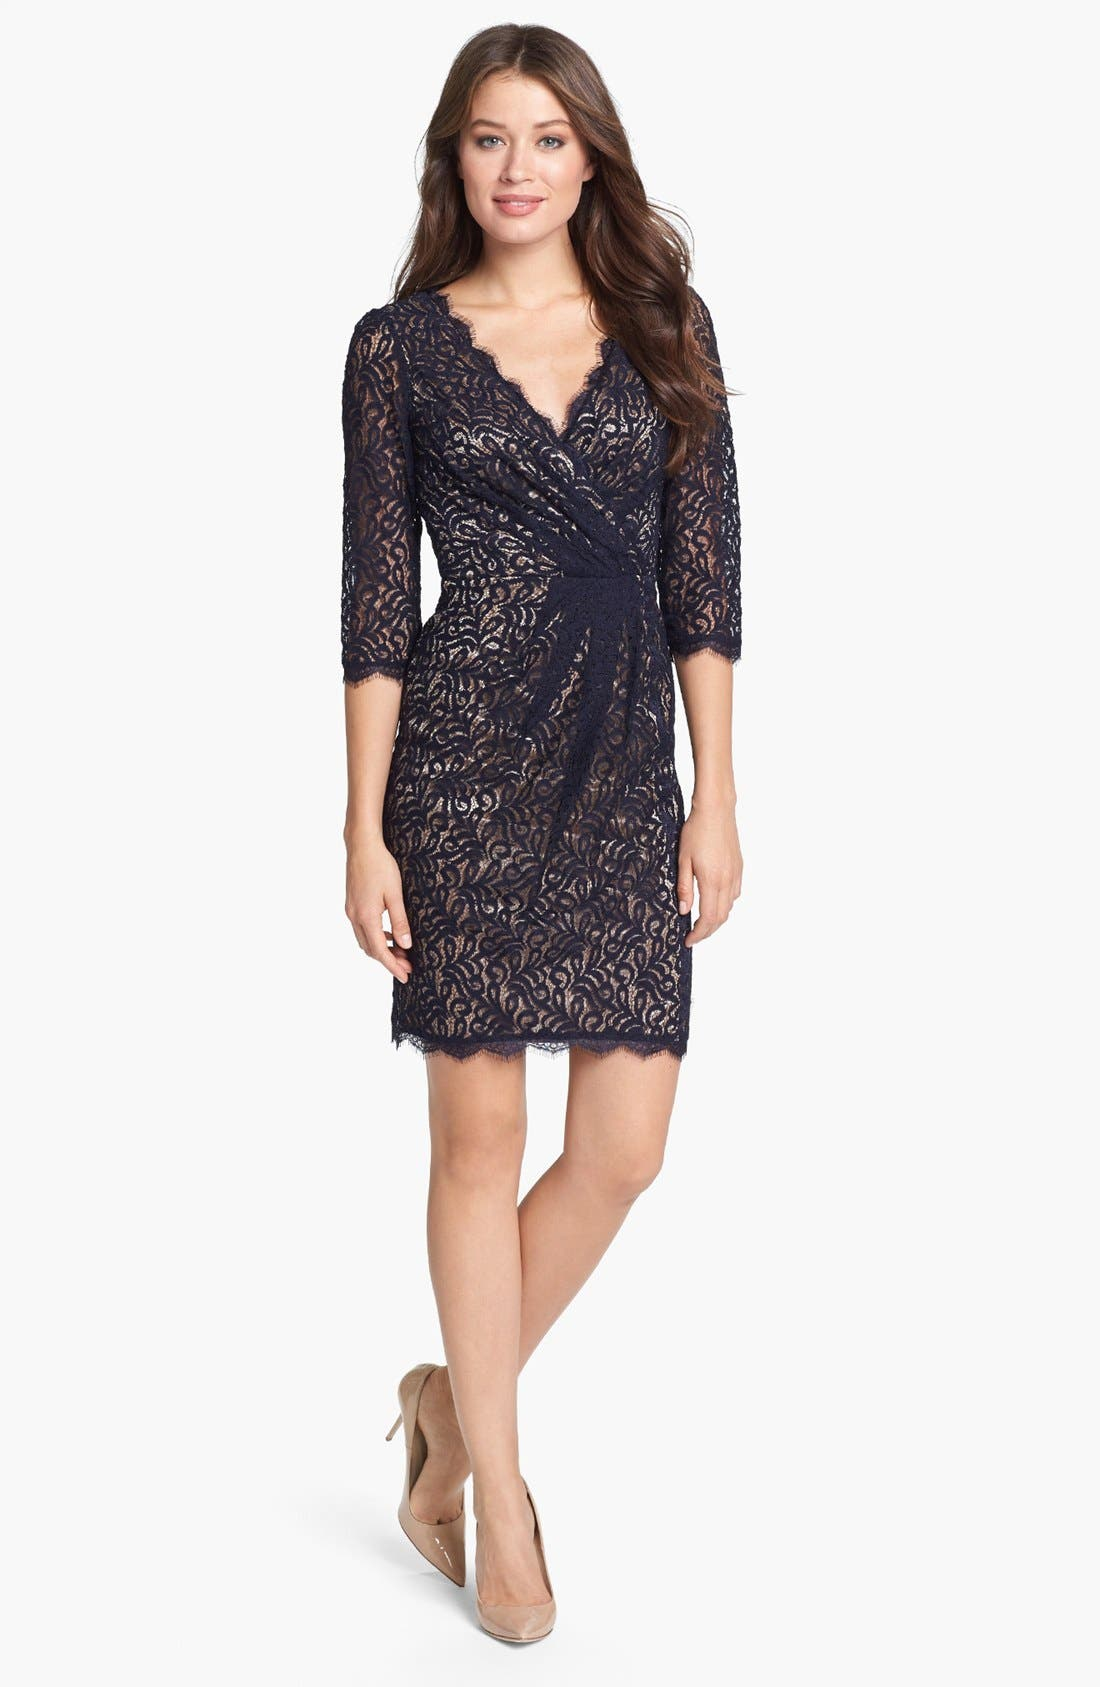 Alternate Image 1 Selected - Adrianna Papell Lace Faux Wrap Dress